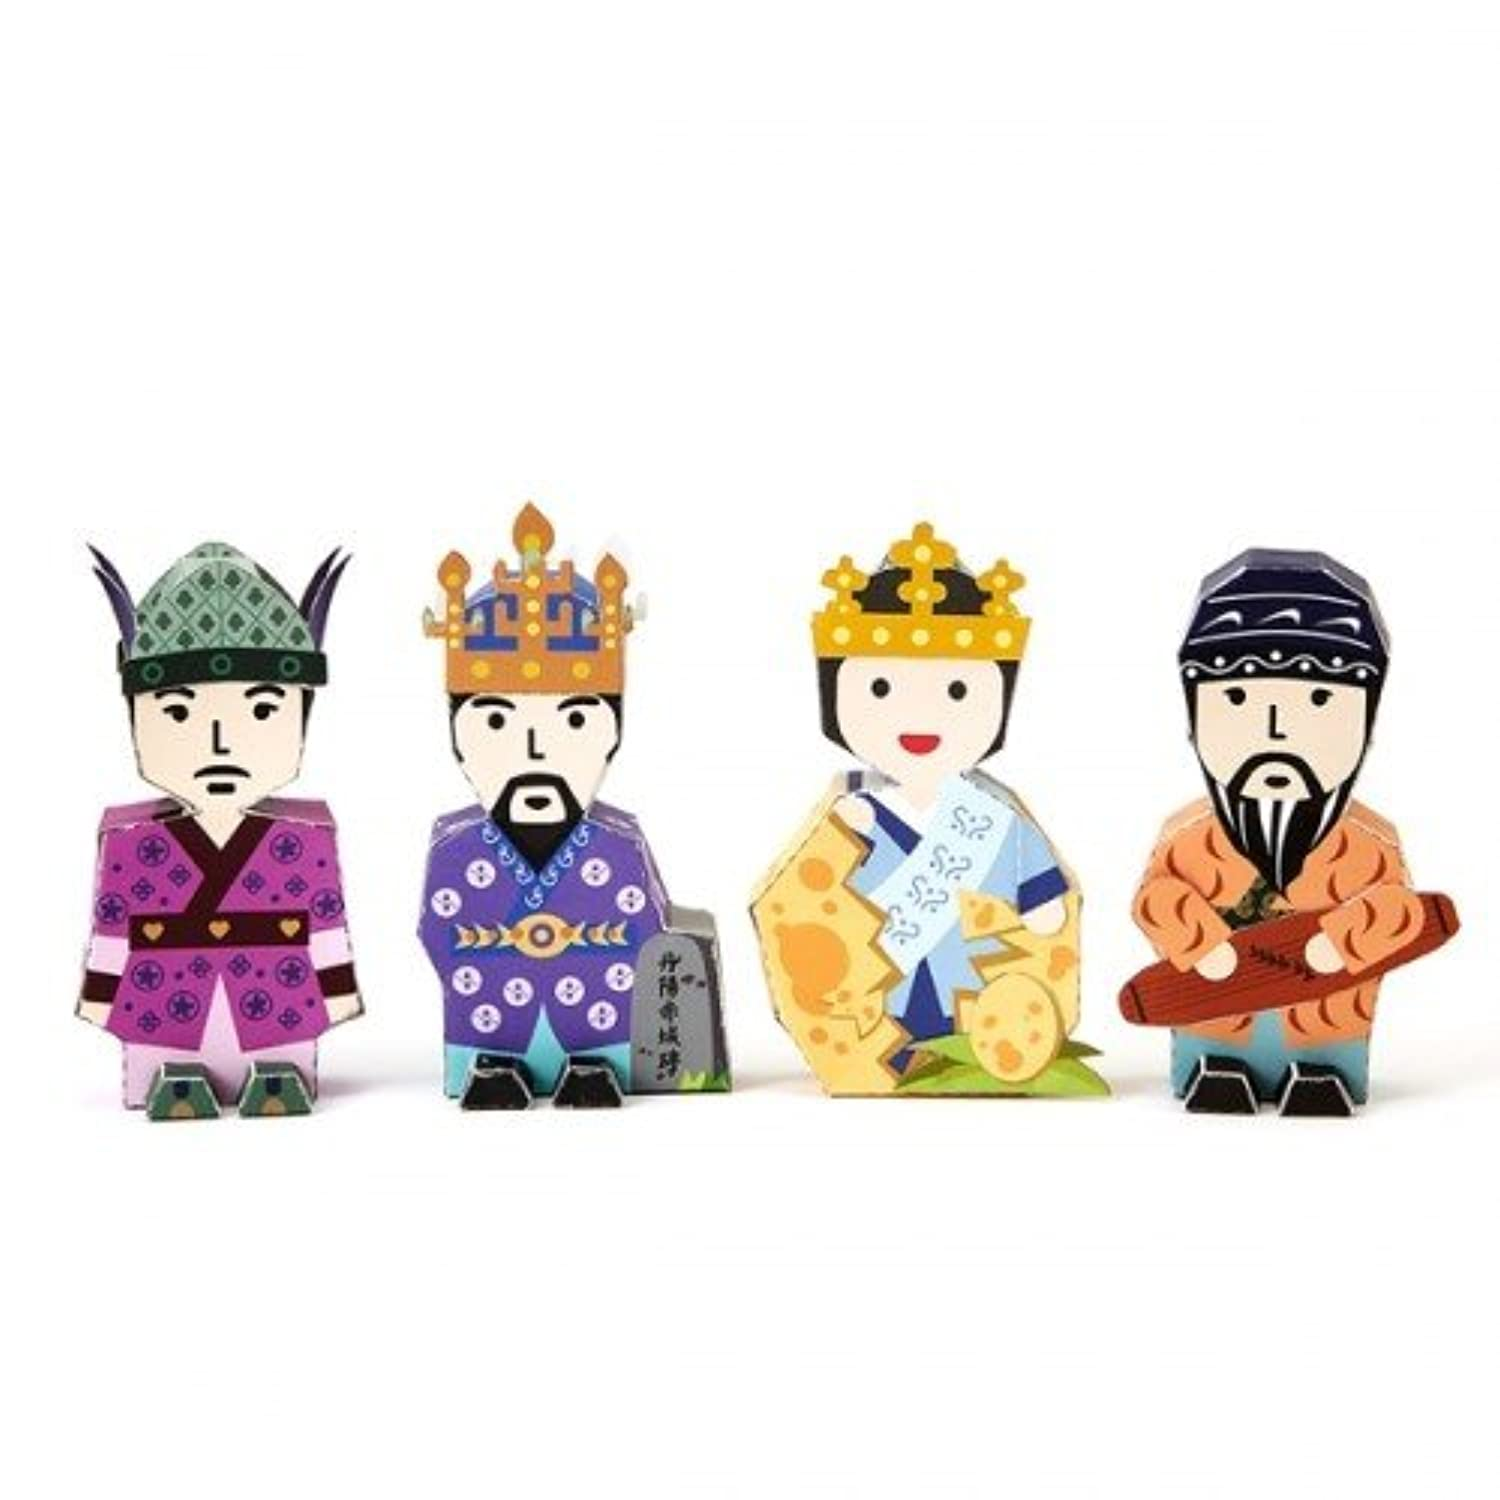 Korea Character Papertoy - Park Hyeok Heose & The code of silla chivaly & Ureuk & King Jinheung